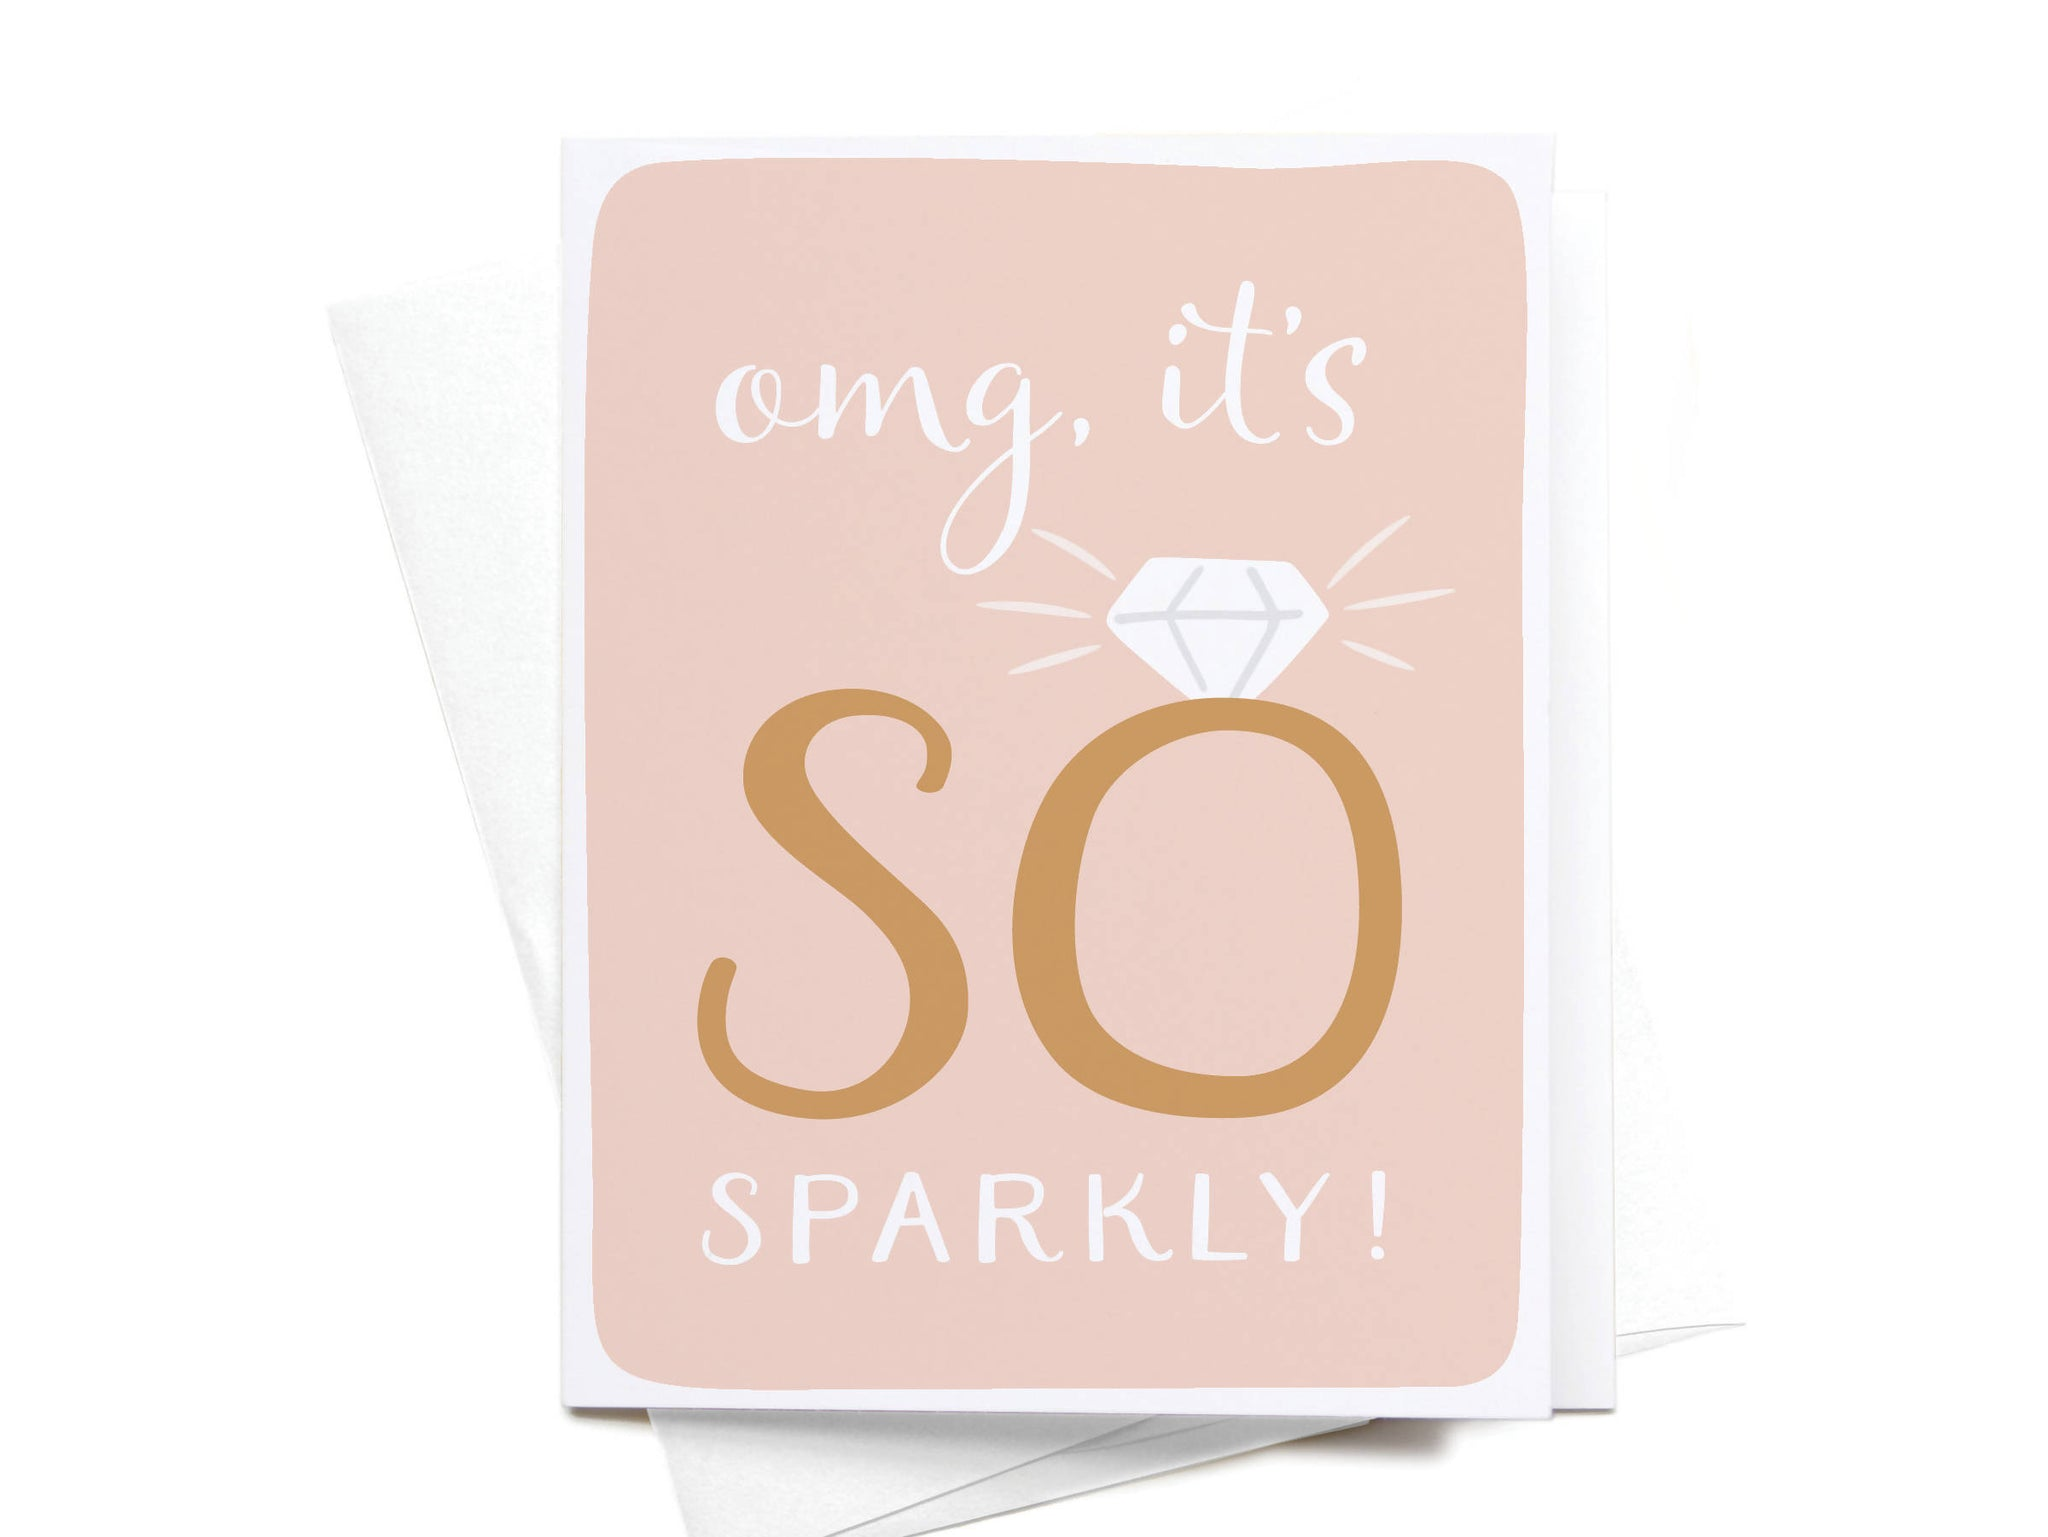 OMG, It's So Sparkly Greeting Card